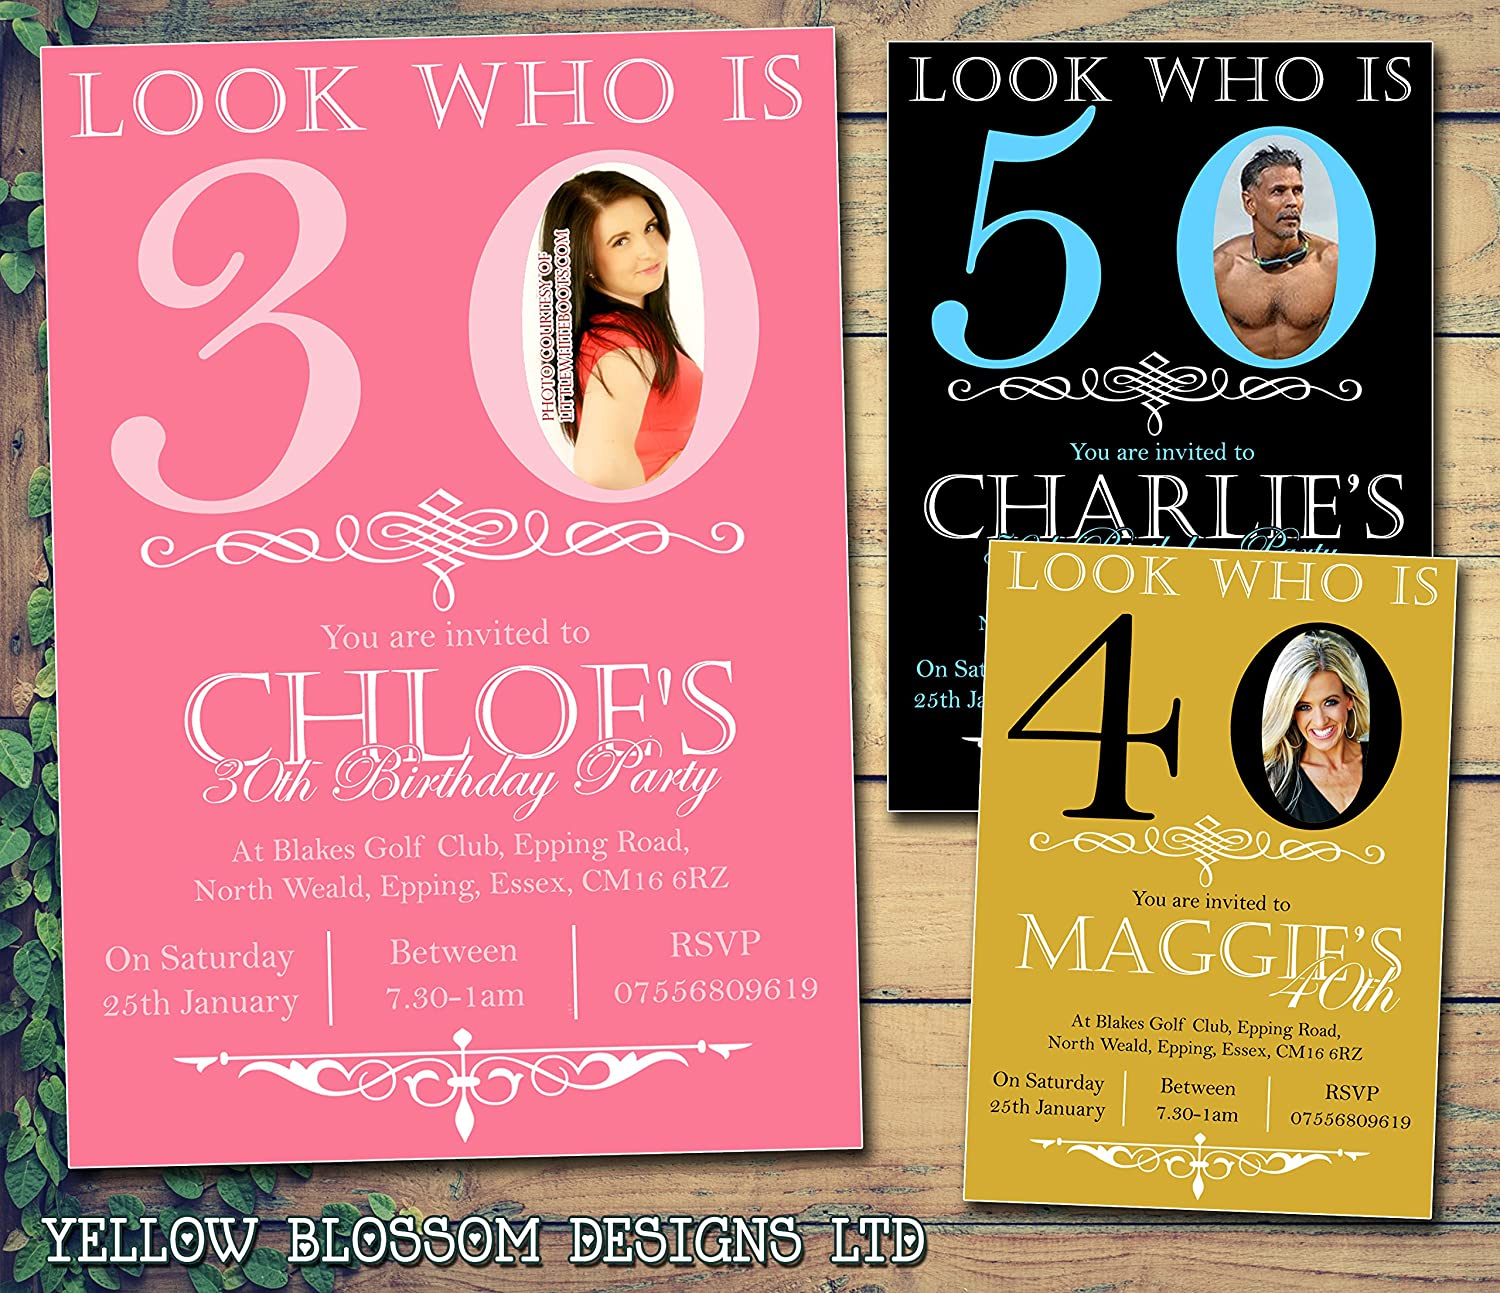 Personalised Printed Photo Look Who Is Invitation Adult Child Printed Invite Boy Girl Male Female For Him For Her Party 30th 40th 50th Gold Black White Pink Blue 5 10 20 30 40 50 60 70 80 90 100